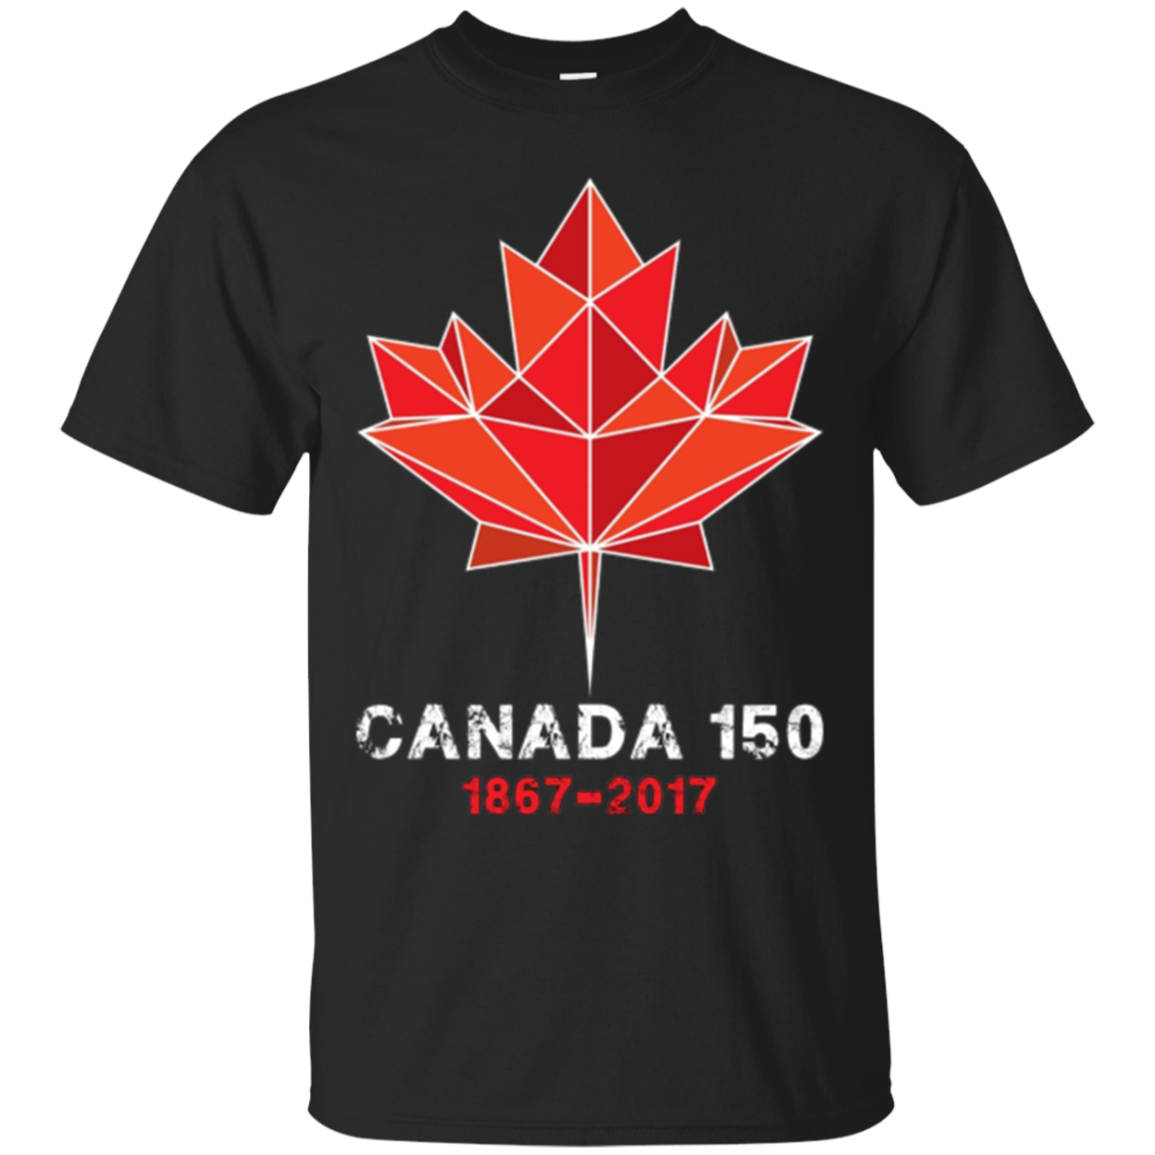 Maple Leaf Canada 150 Years T Shirt Canada 1867-2017